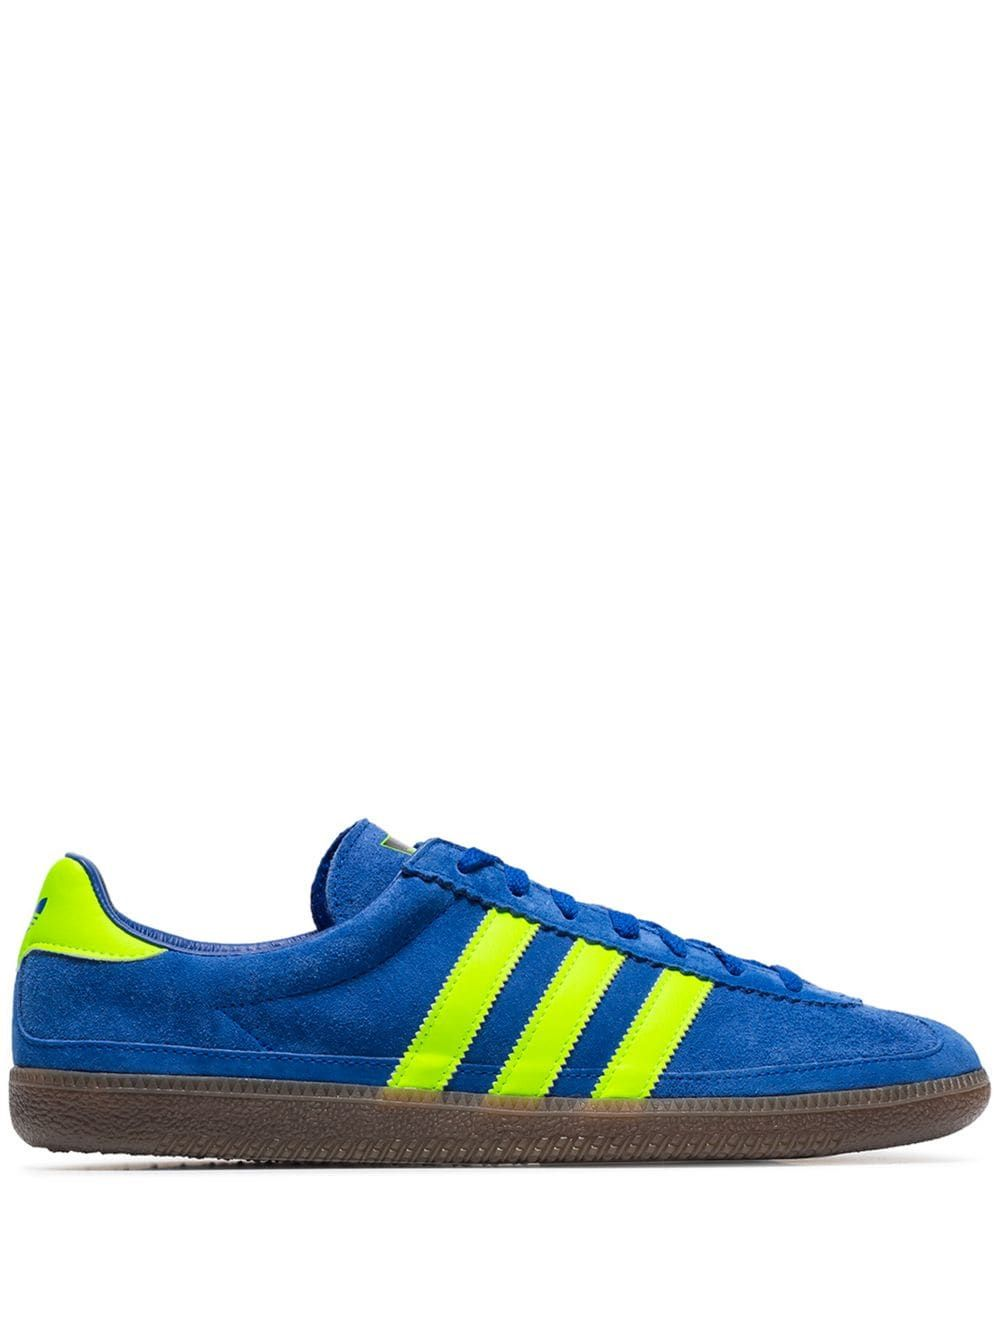 X Originals Adidas Suede Top Spezial Blue Whalley Low b7gfY6yIv